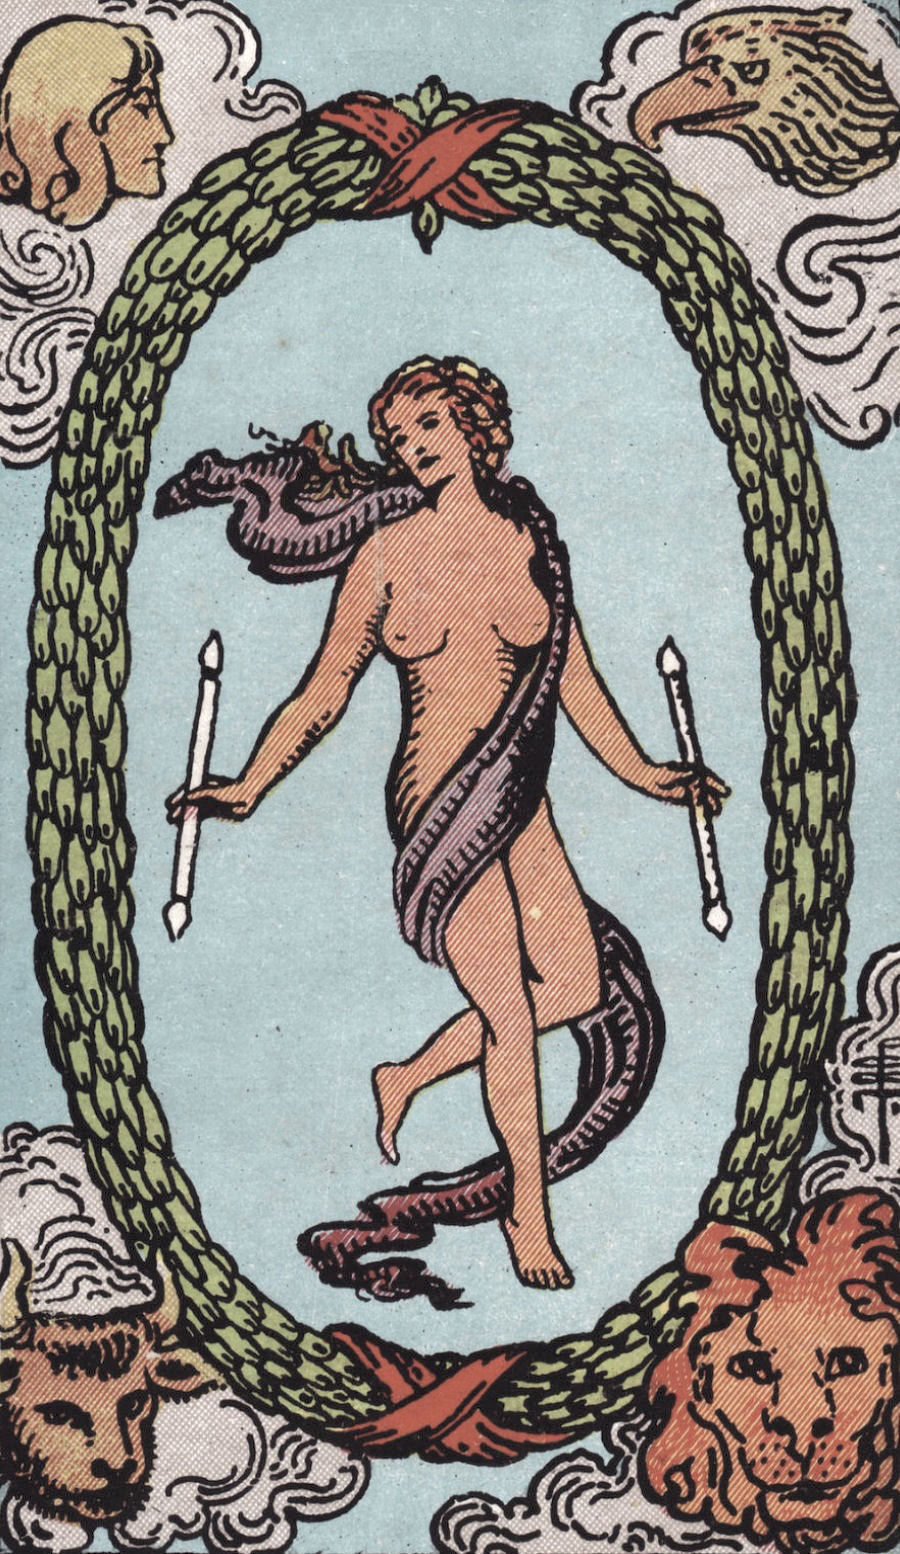 The World Rider Waite Smith Tarot Card